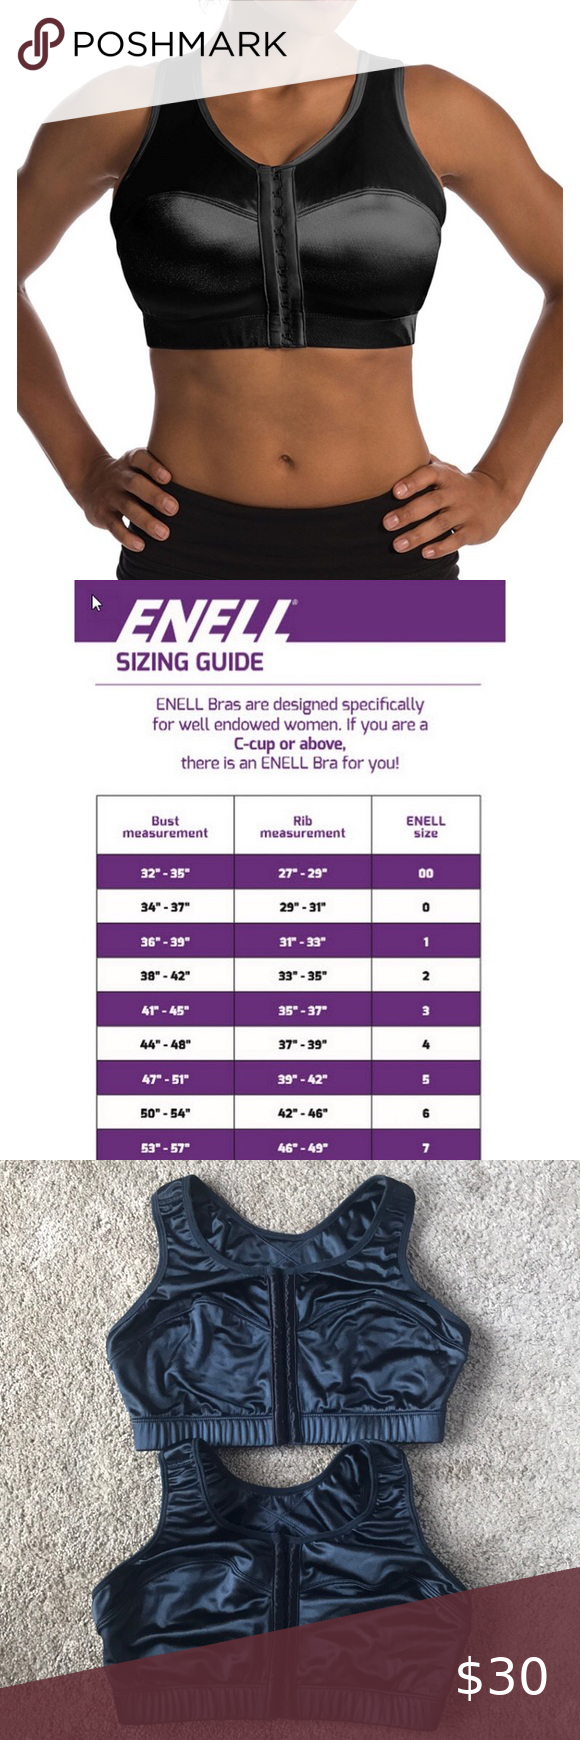 ENELL high impact sports bra in 2020 High impact sports